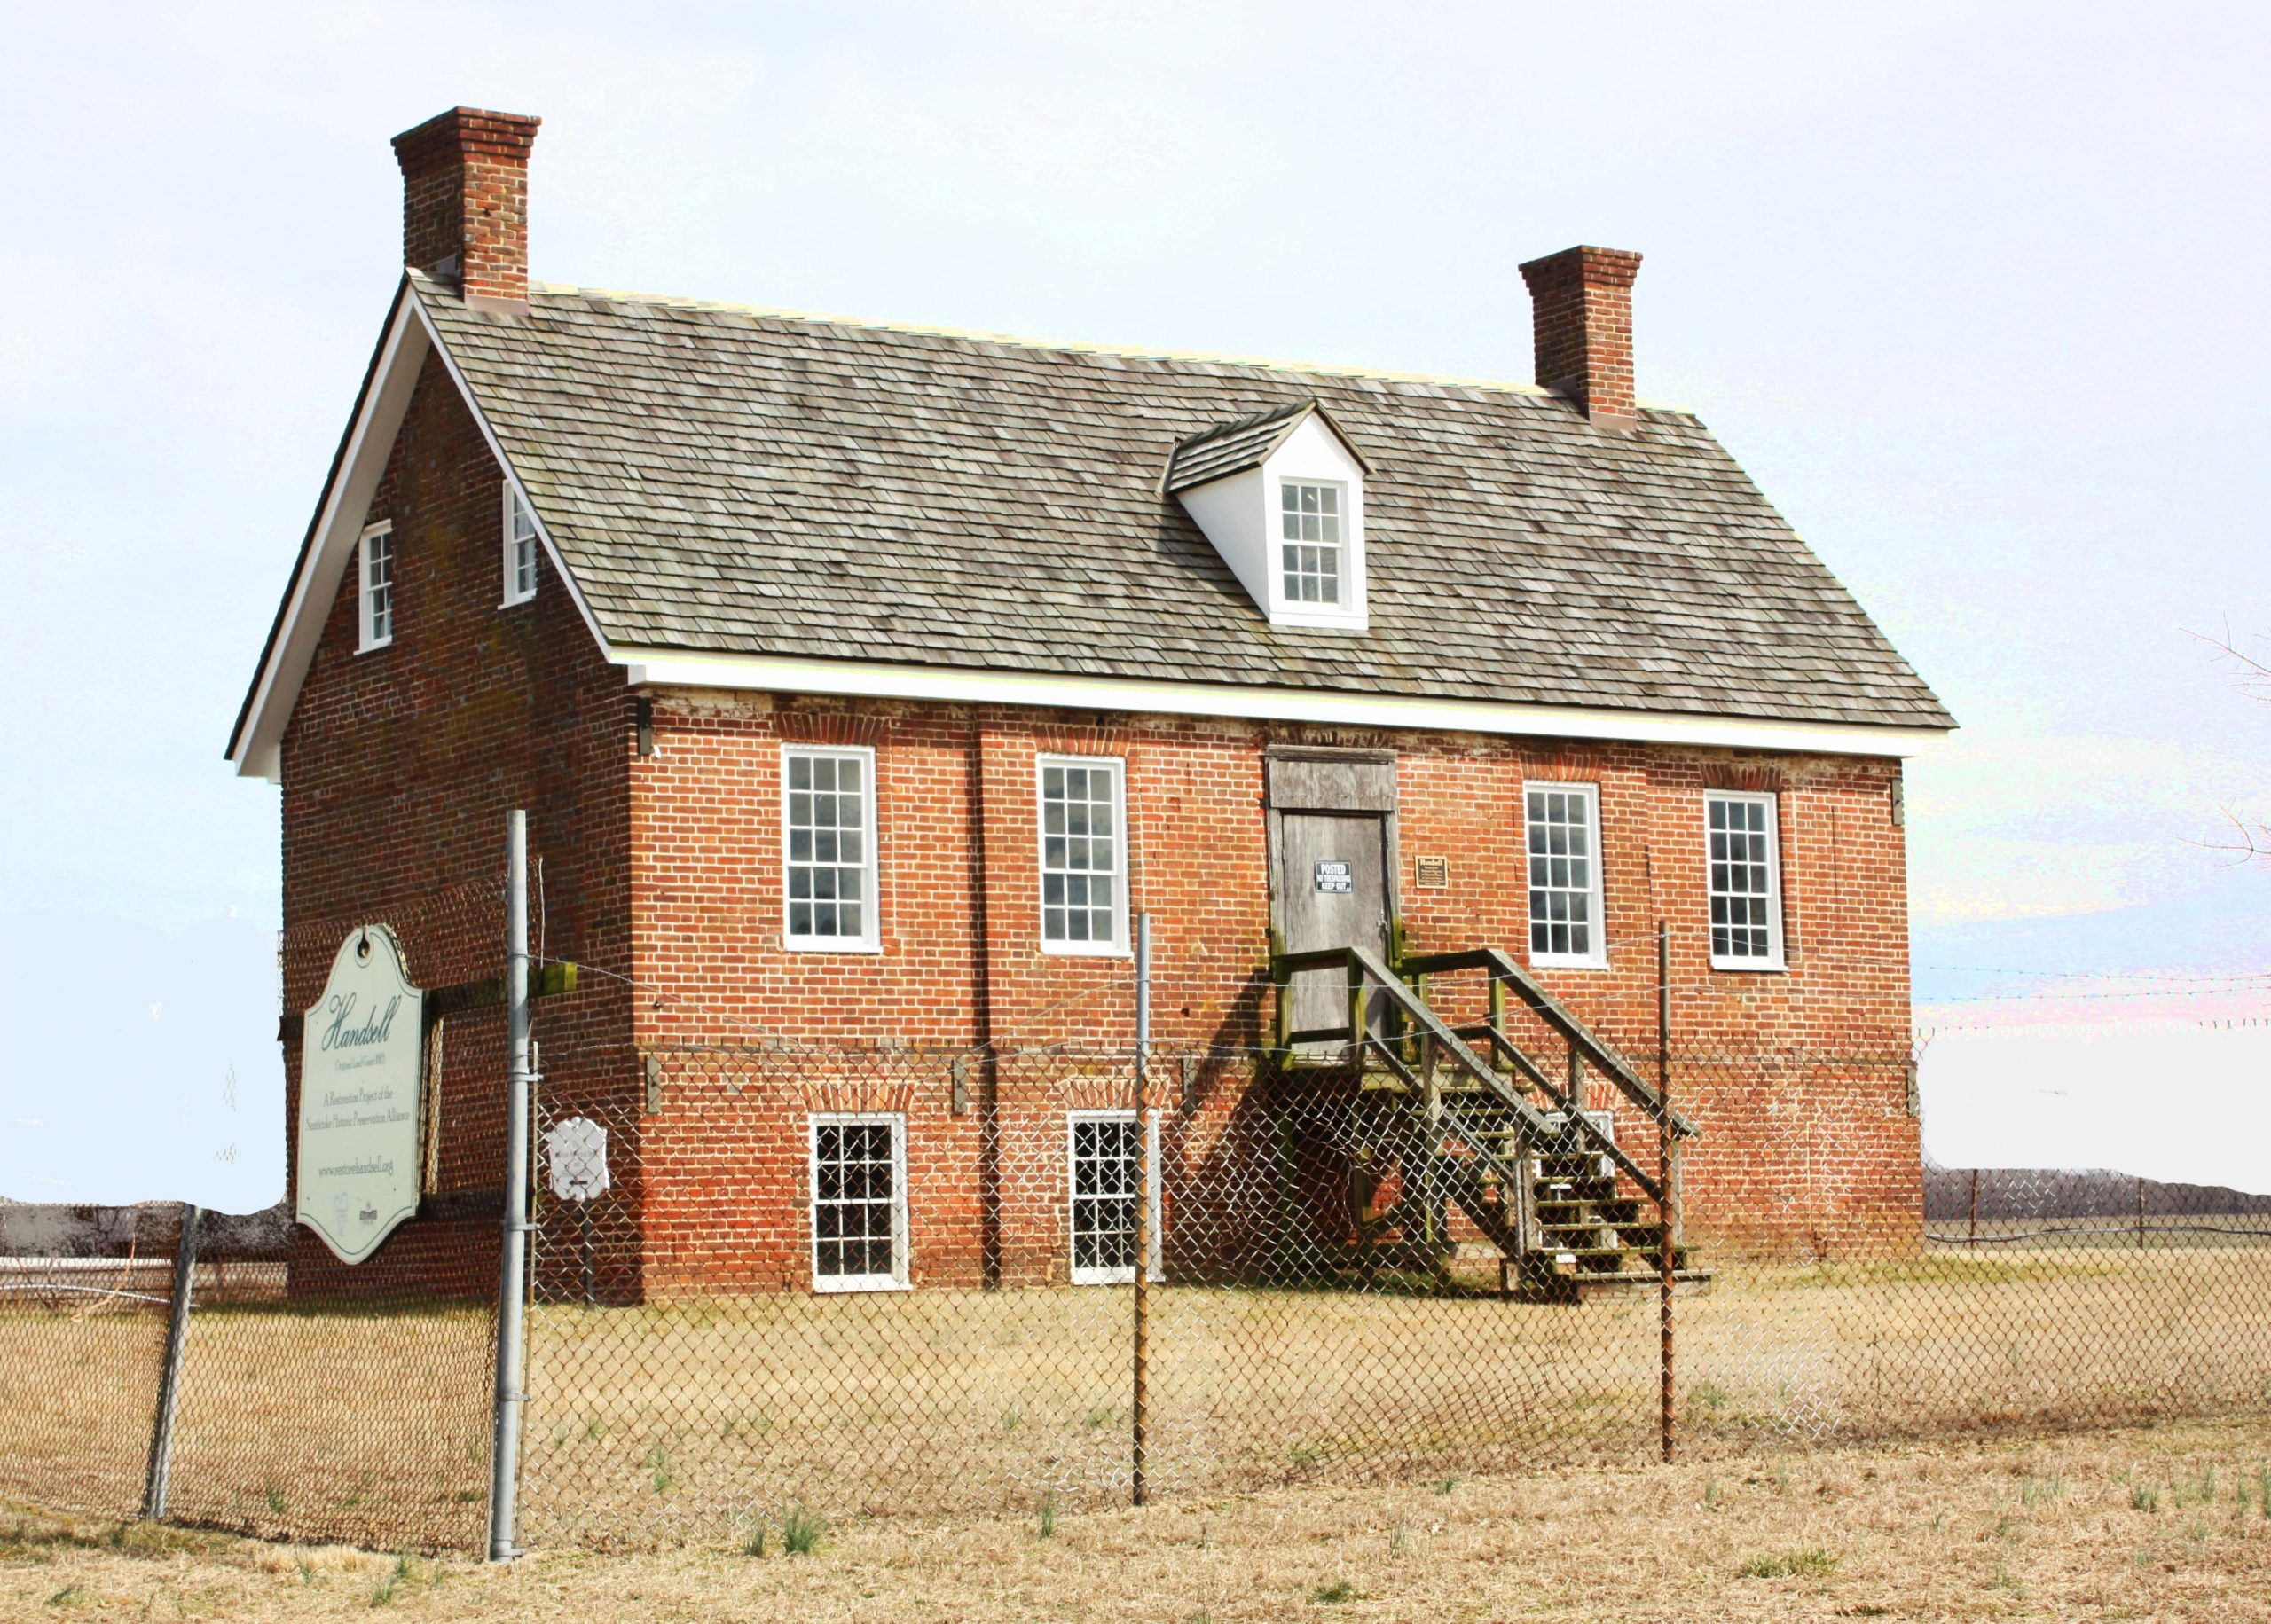 Handsell House in 2019 | Image Credit: Restore Handsell